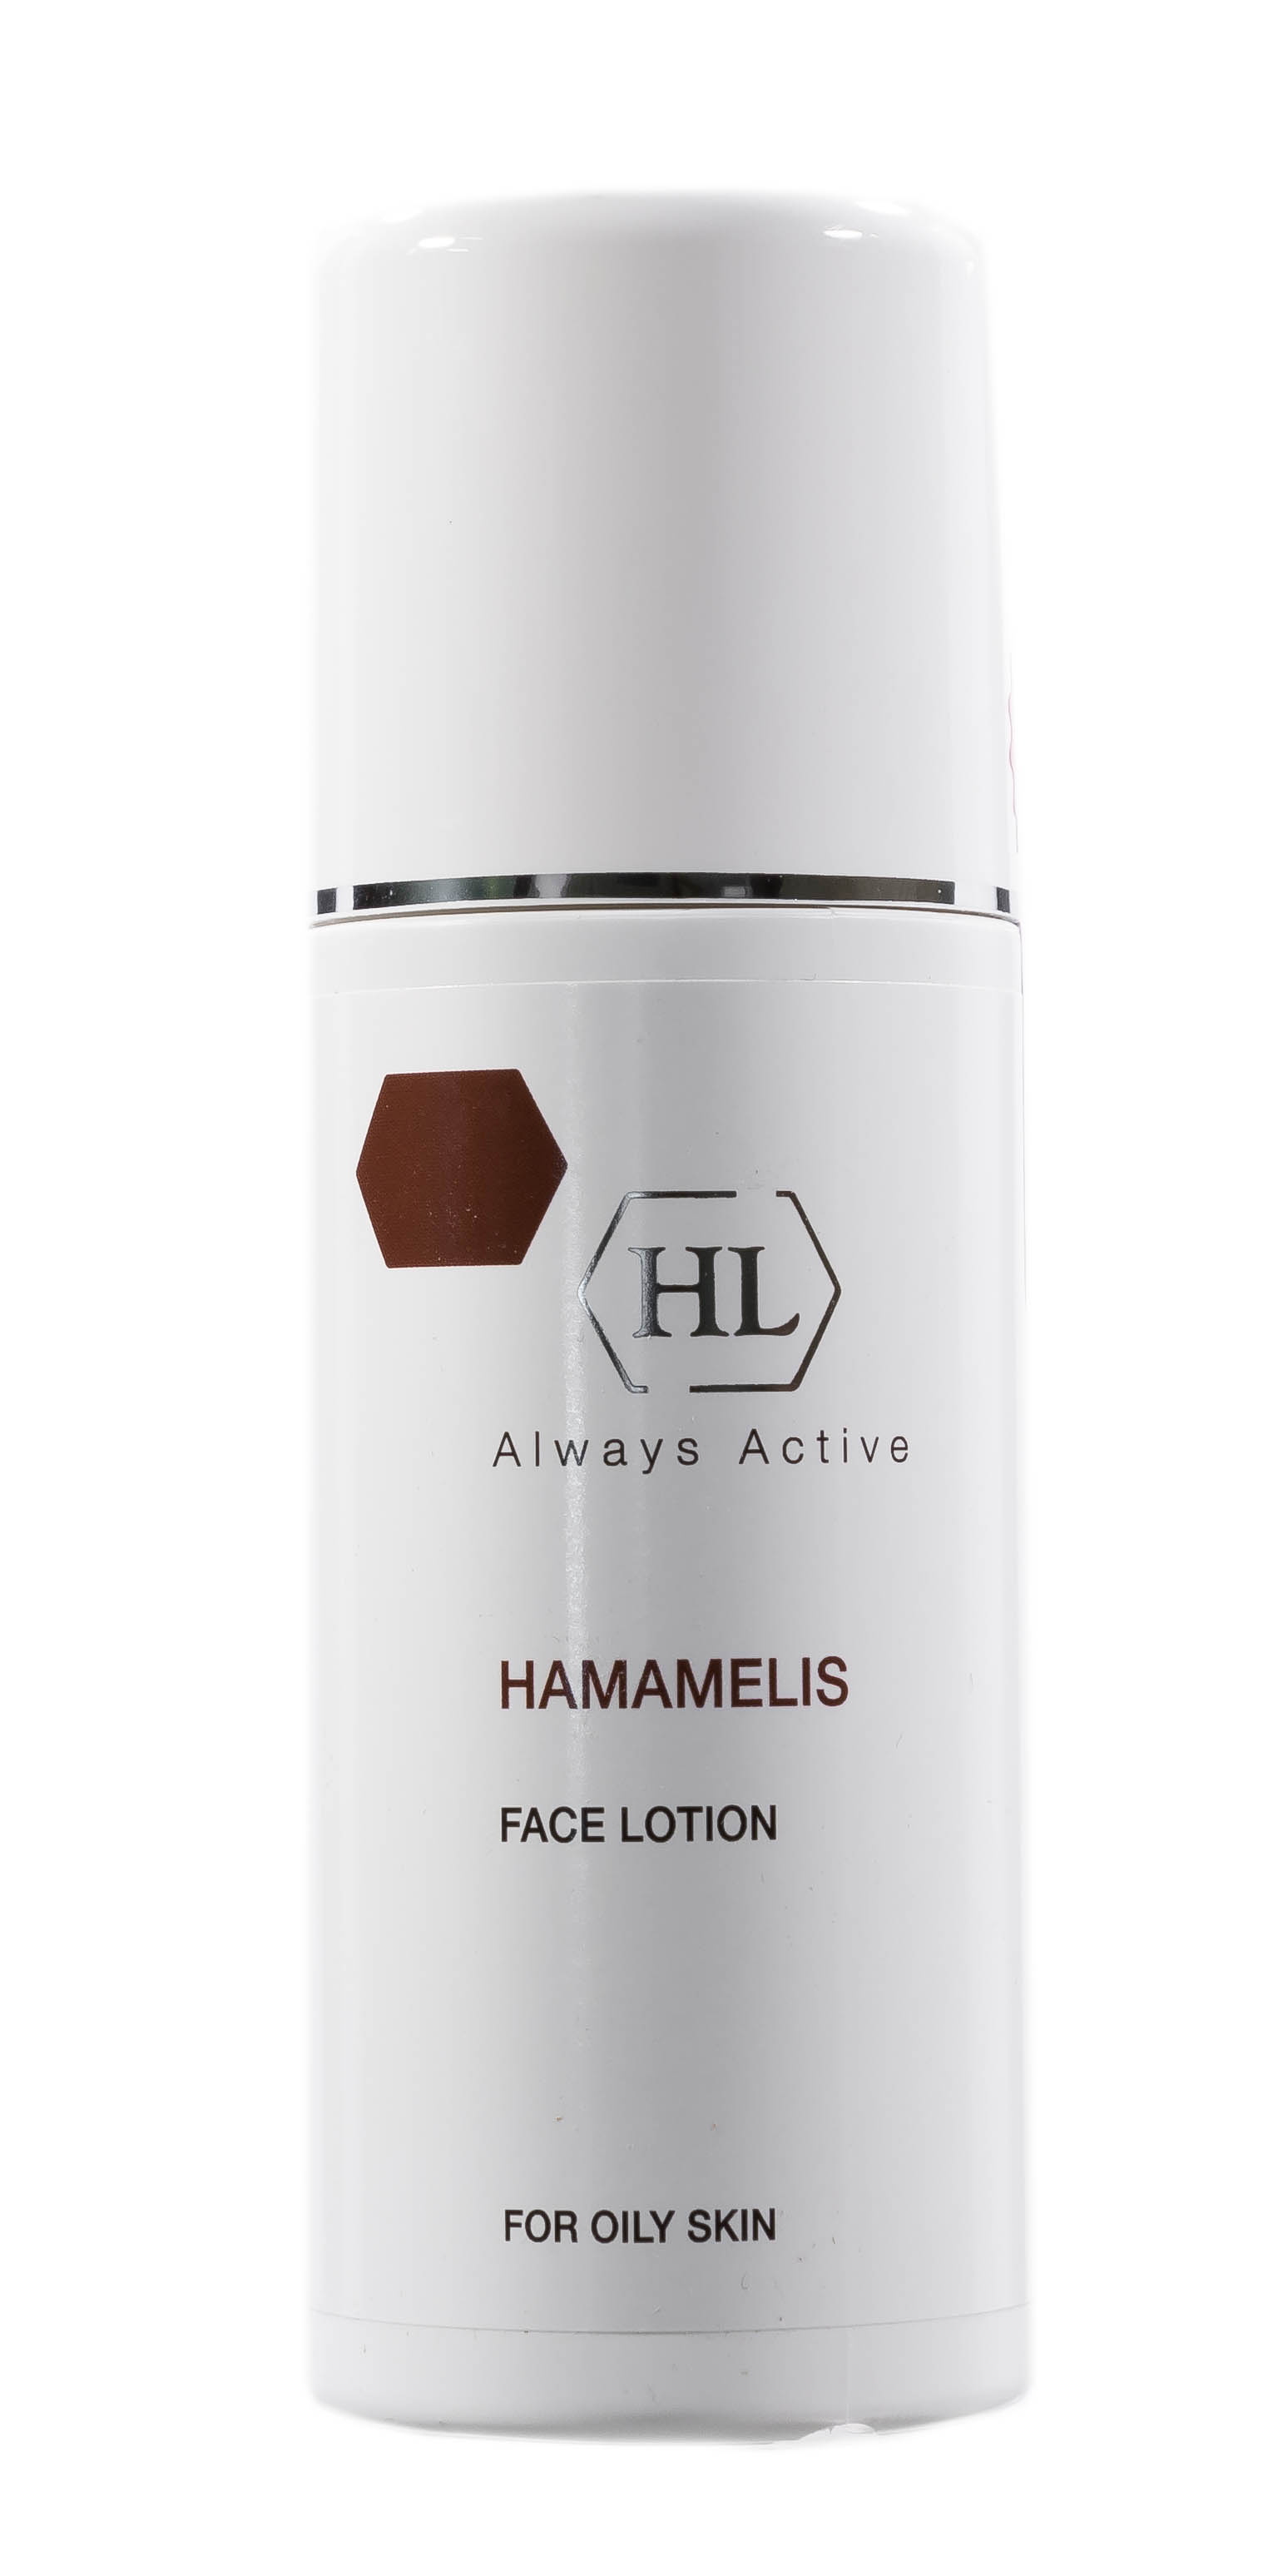 Холи Ленд Hamamelis Lotion Лосьон с гамамелисом 250 мл (Holyland Laboratories, Lotions) фото 1